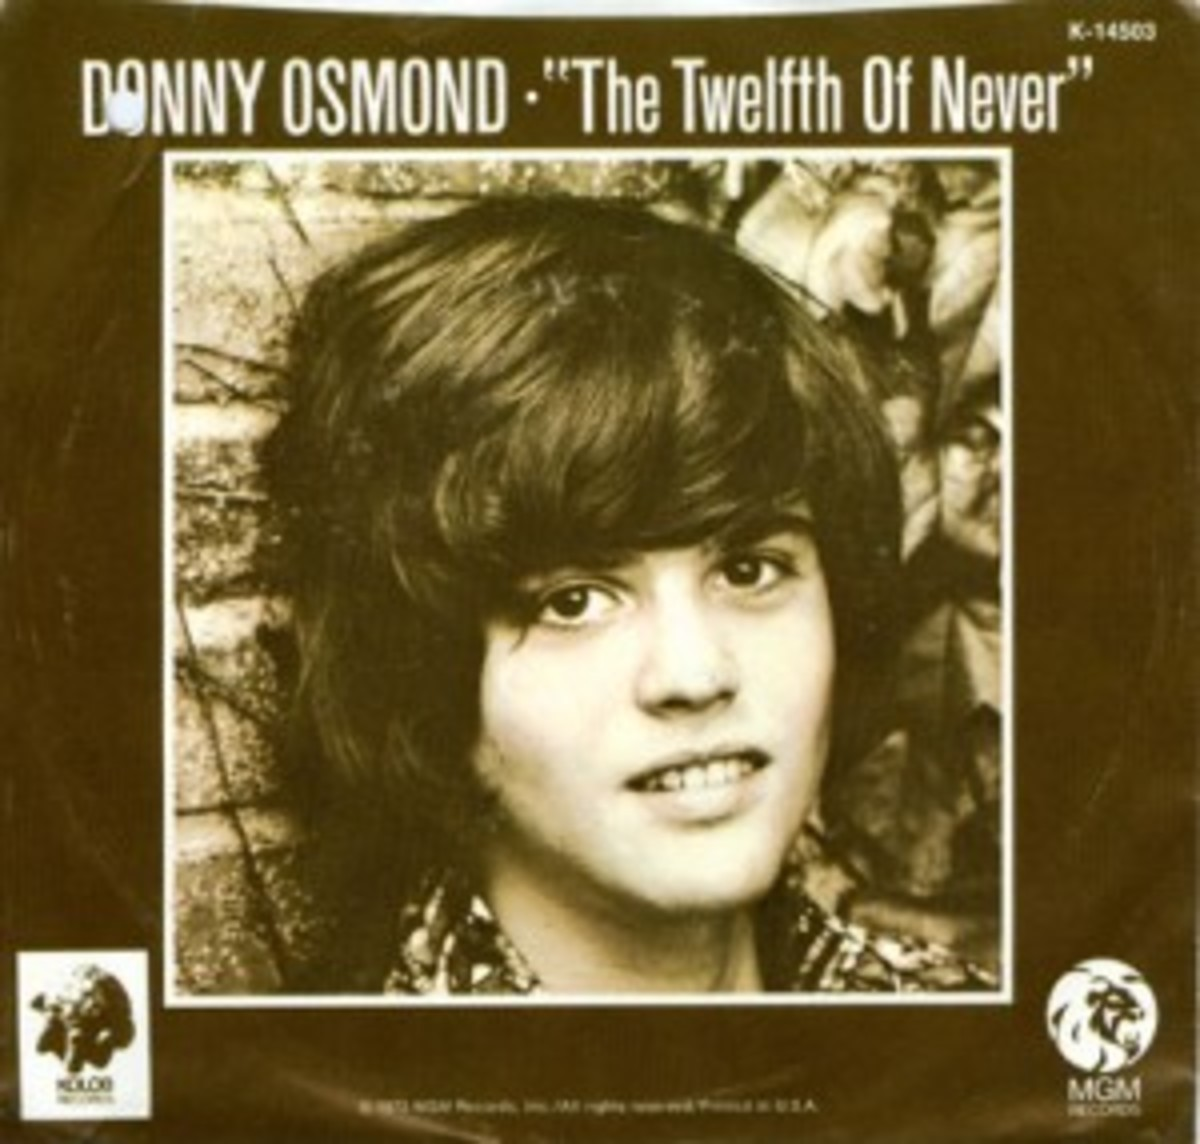 Donny Osmond The Twelfth of Never picture sleeve